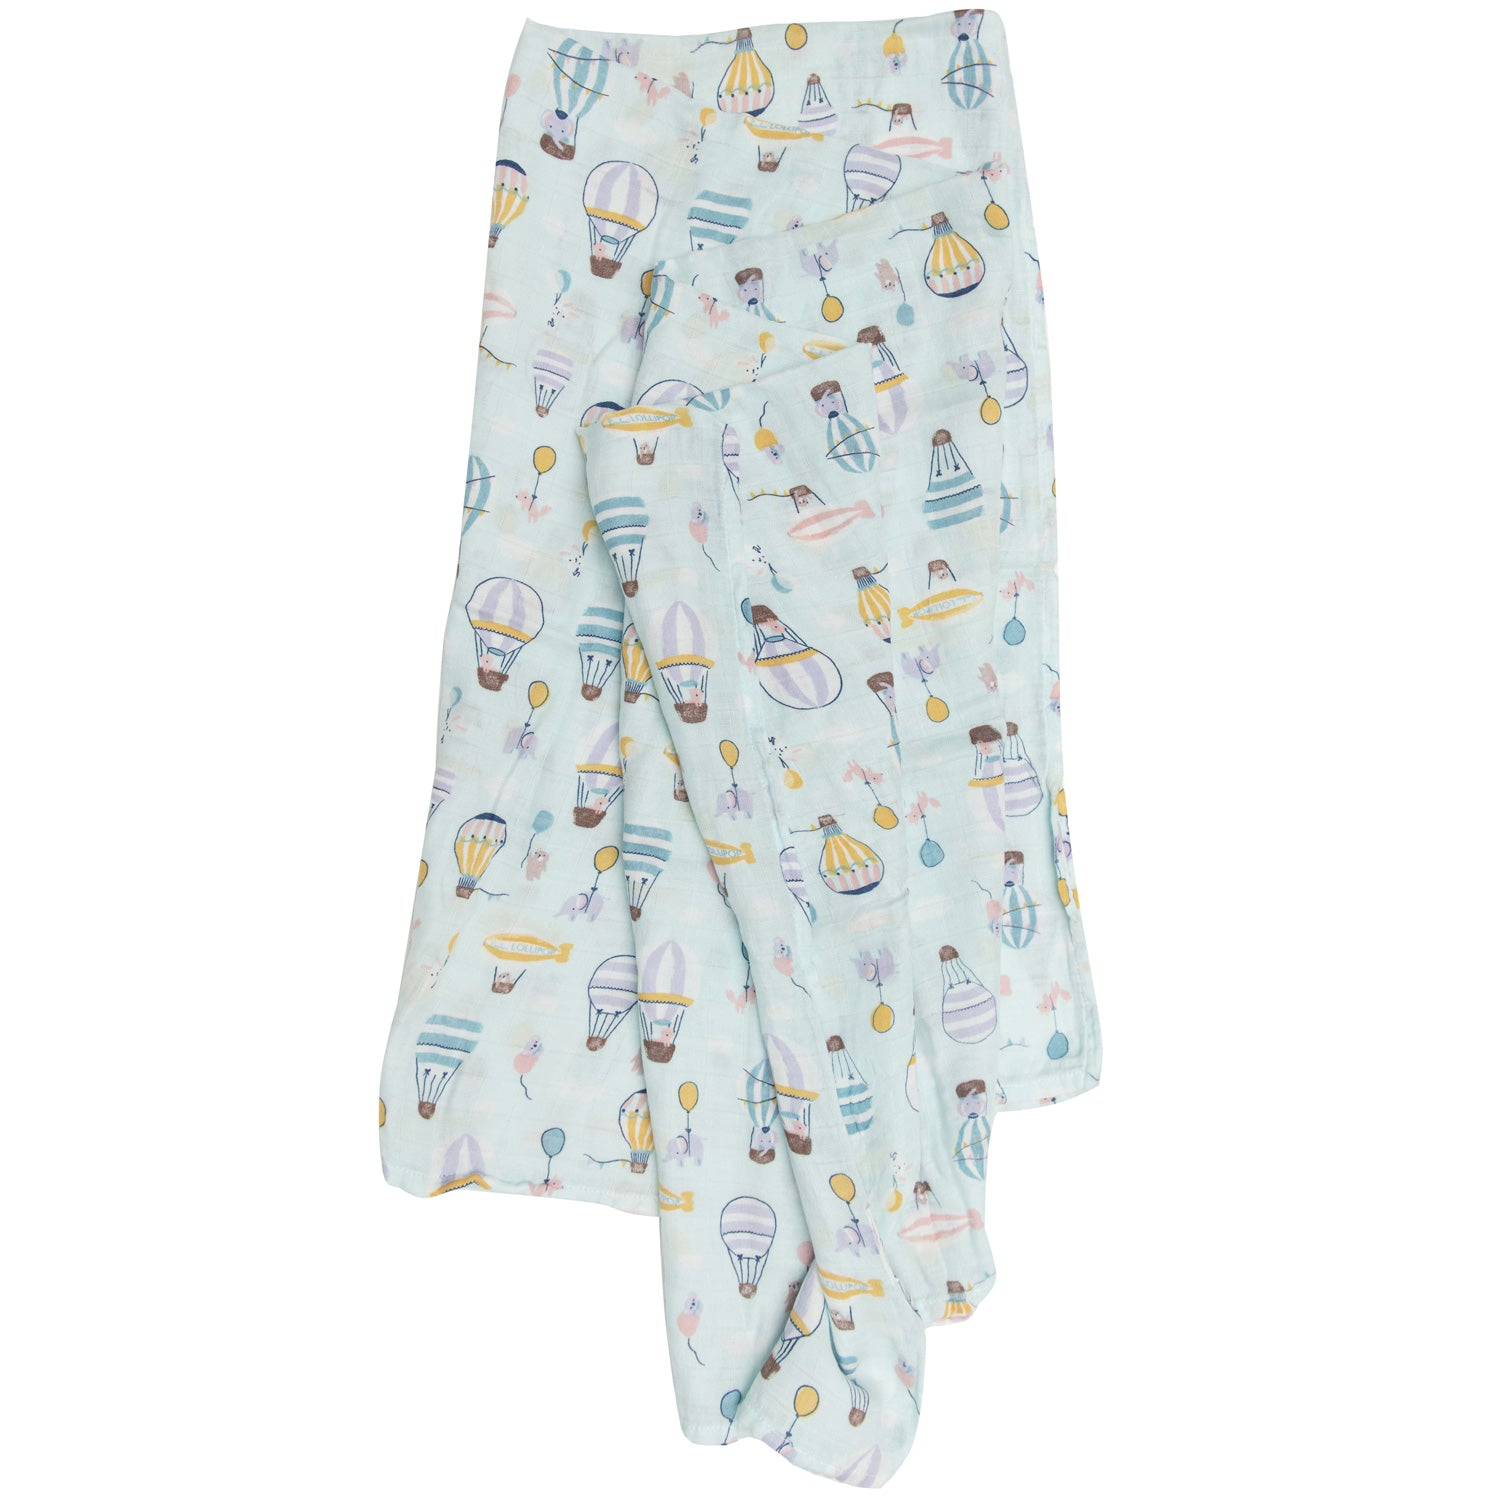 Loulou Lollipop Bamboo Muslin Swaddle Blanket - Up Up Away